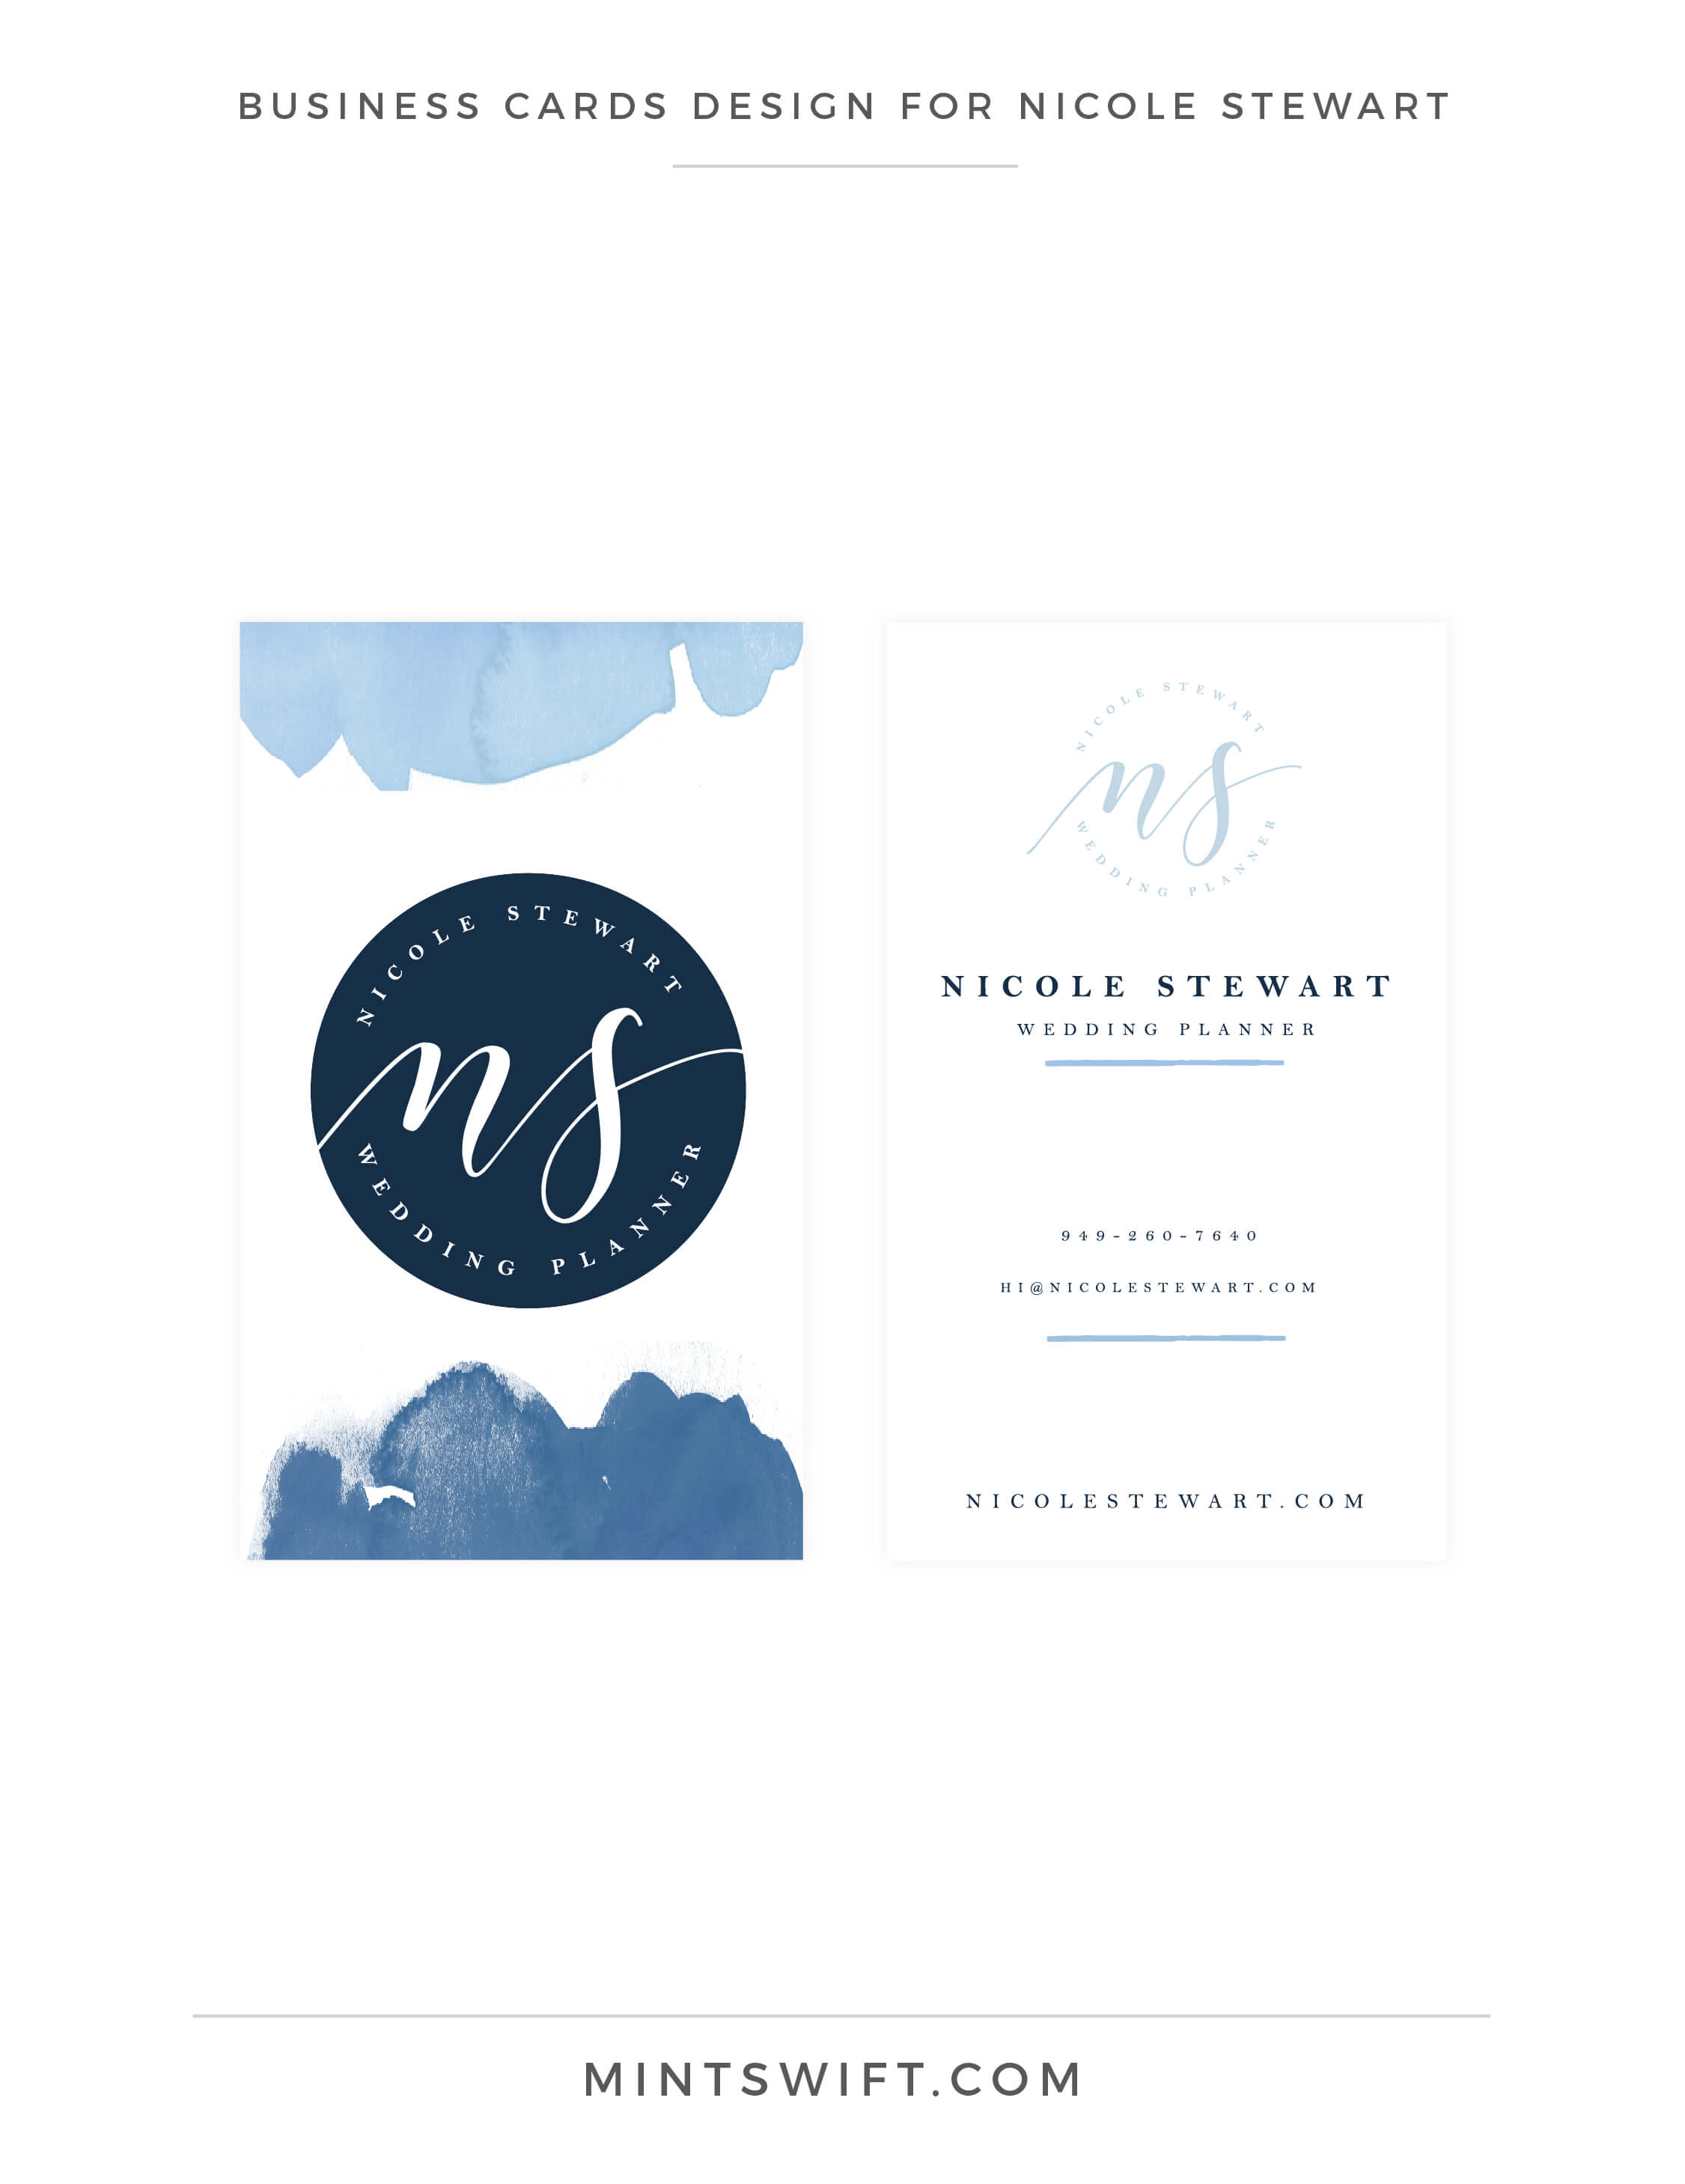 Nicole Stewart - Business Cards Design - Brand Design Package - MintSwift